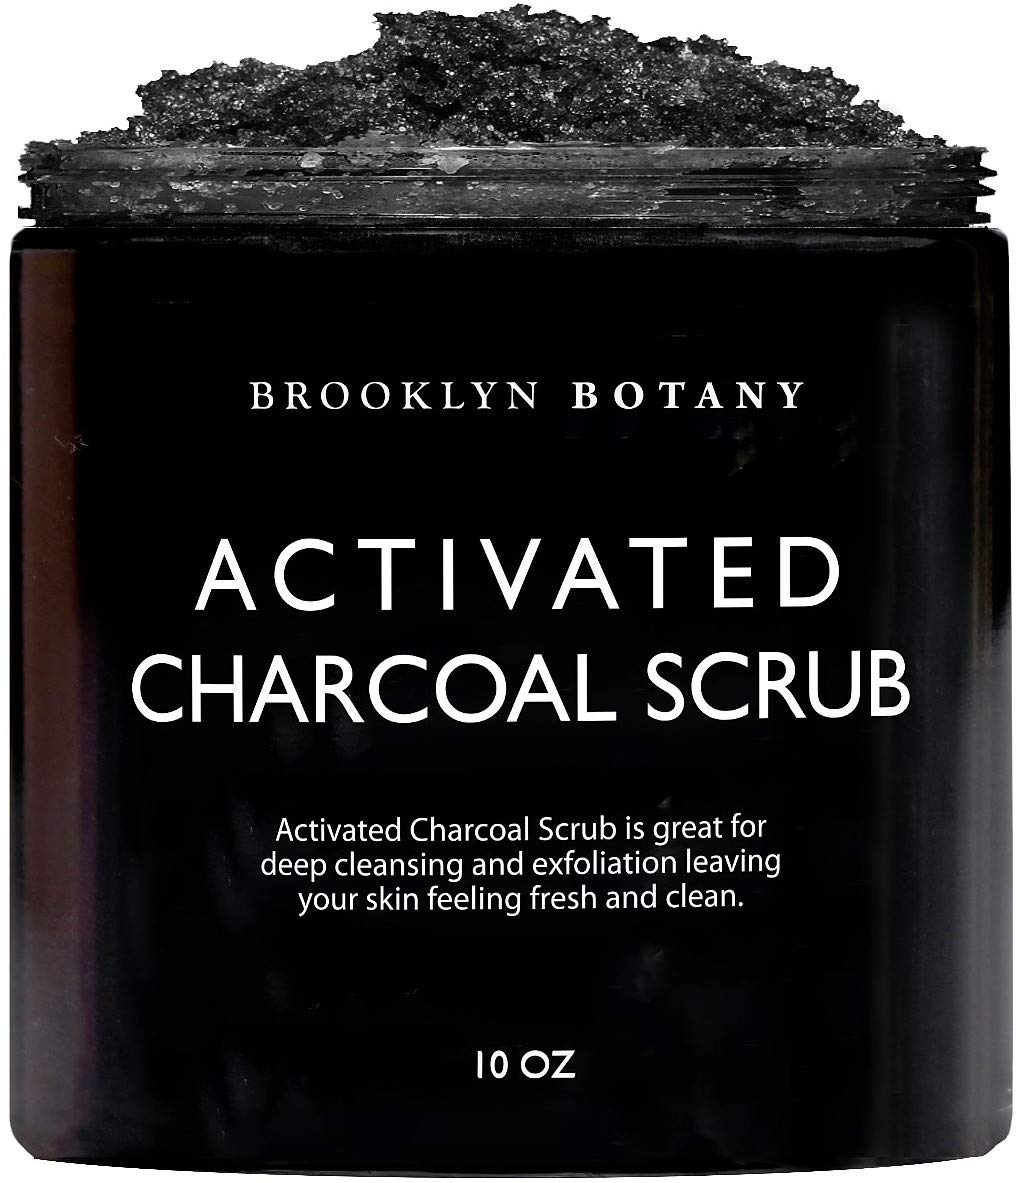 Brooklyn Botany Premium Activated Charcoal Scrub - Deep Exfoliation, Pore Minimizer & Reduces Wrinkles, Acne Scars, Blackhead Remover & Anti Cellulite Treatment - Body Scrub & Facial Cleanser - 10 oz by Brooklyn Botany